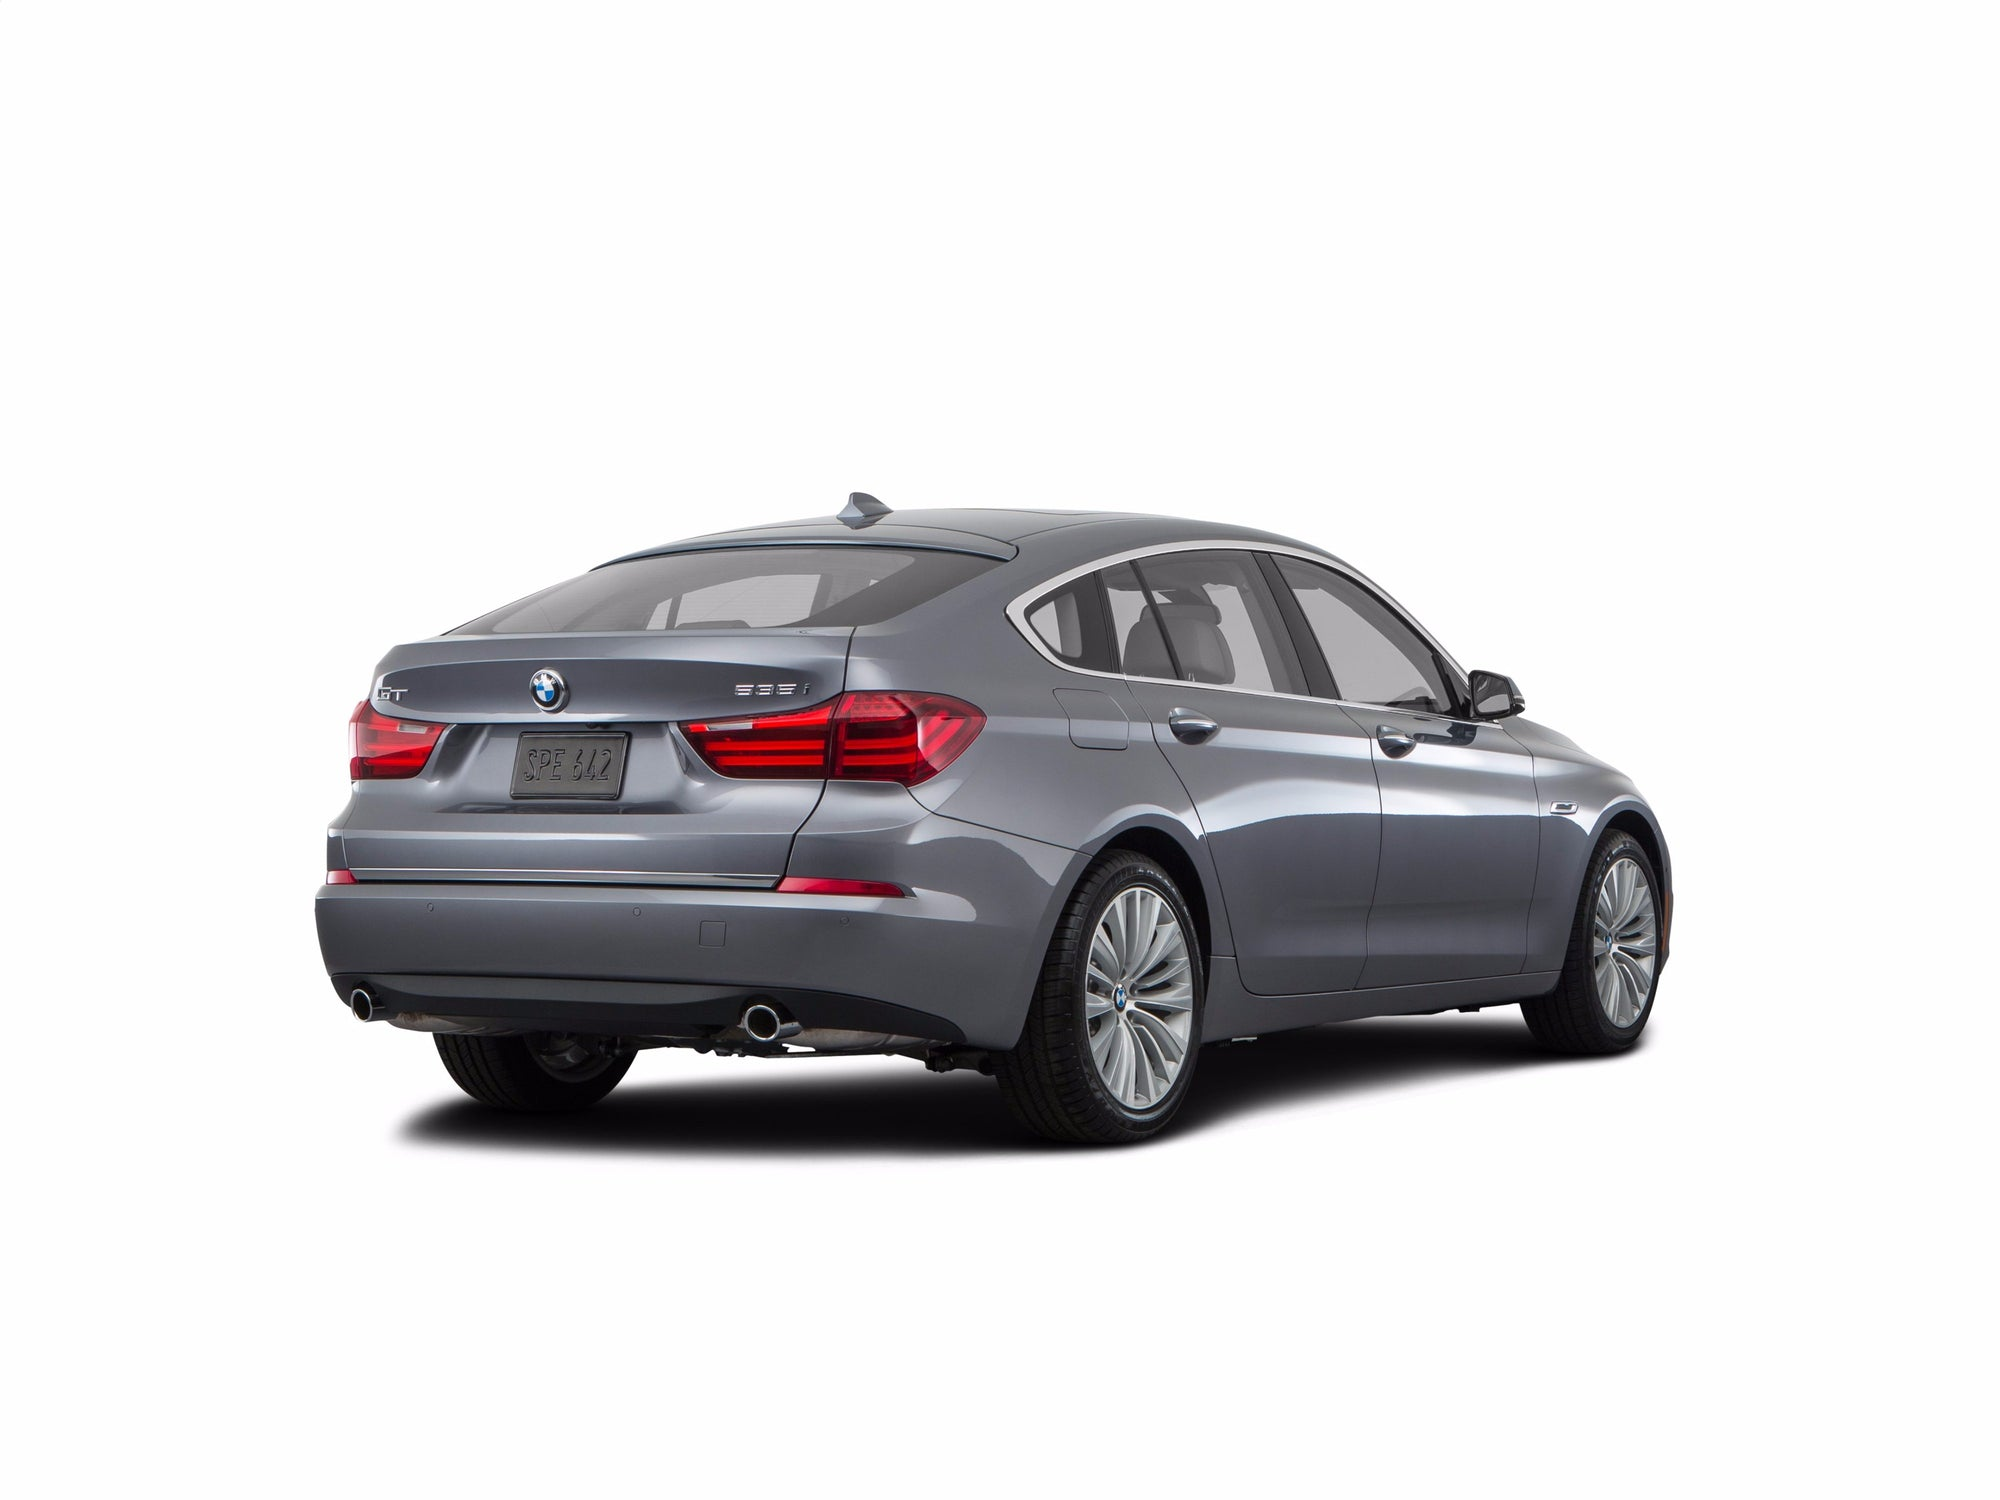 Bmw 5 Series Hitch For Sedan Wagon F10 F11 Model Years 2010 2016 By Stealth Hitches